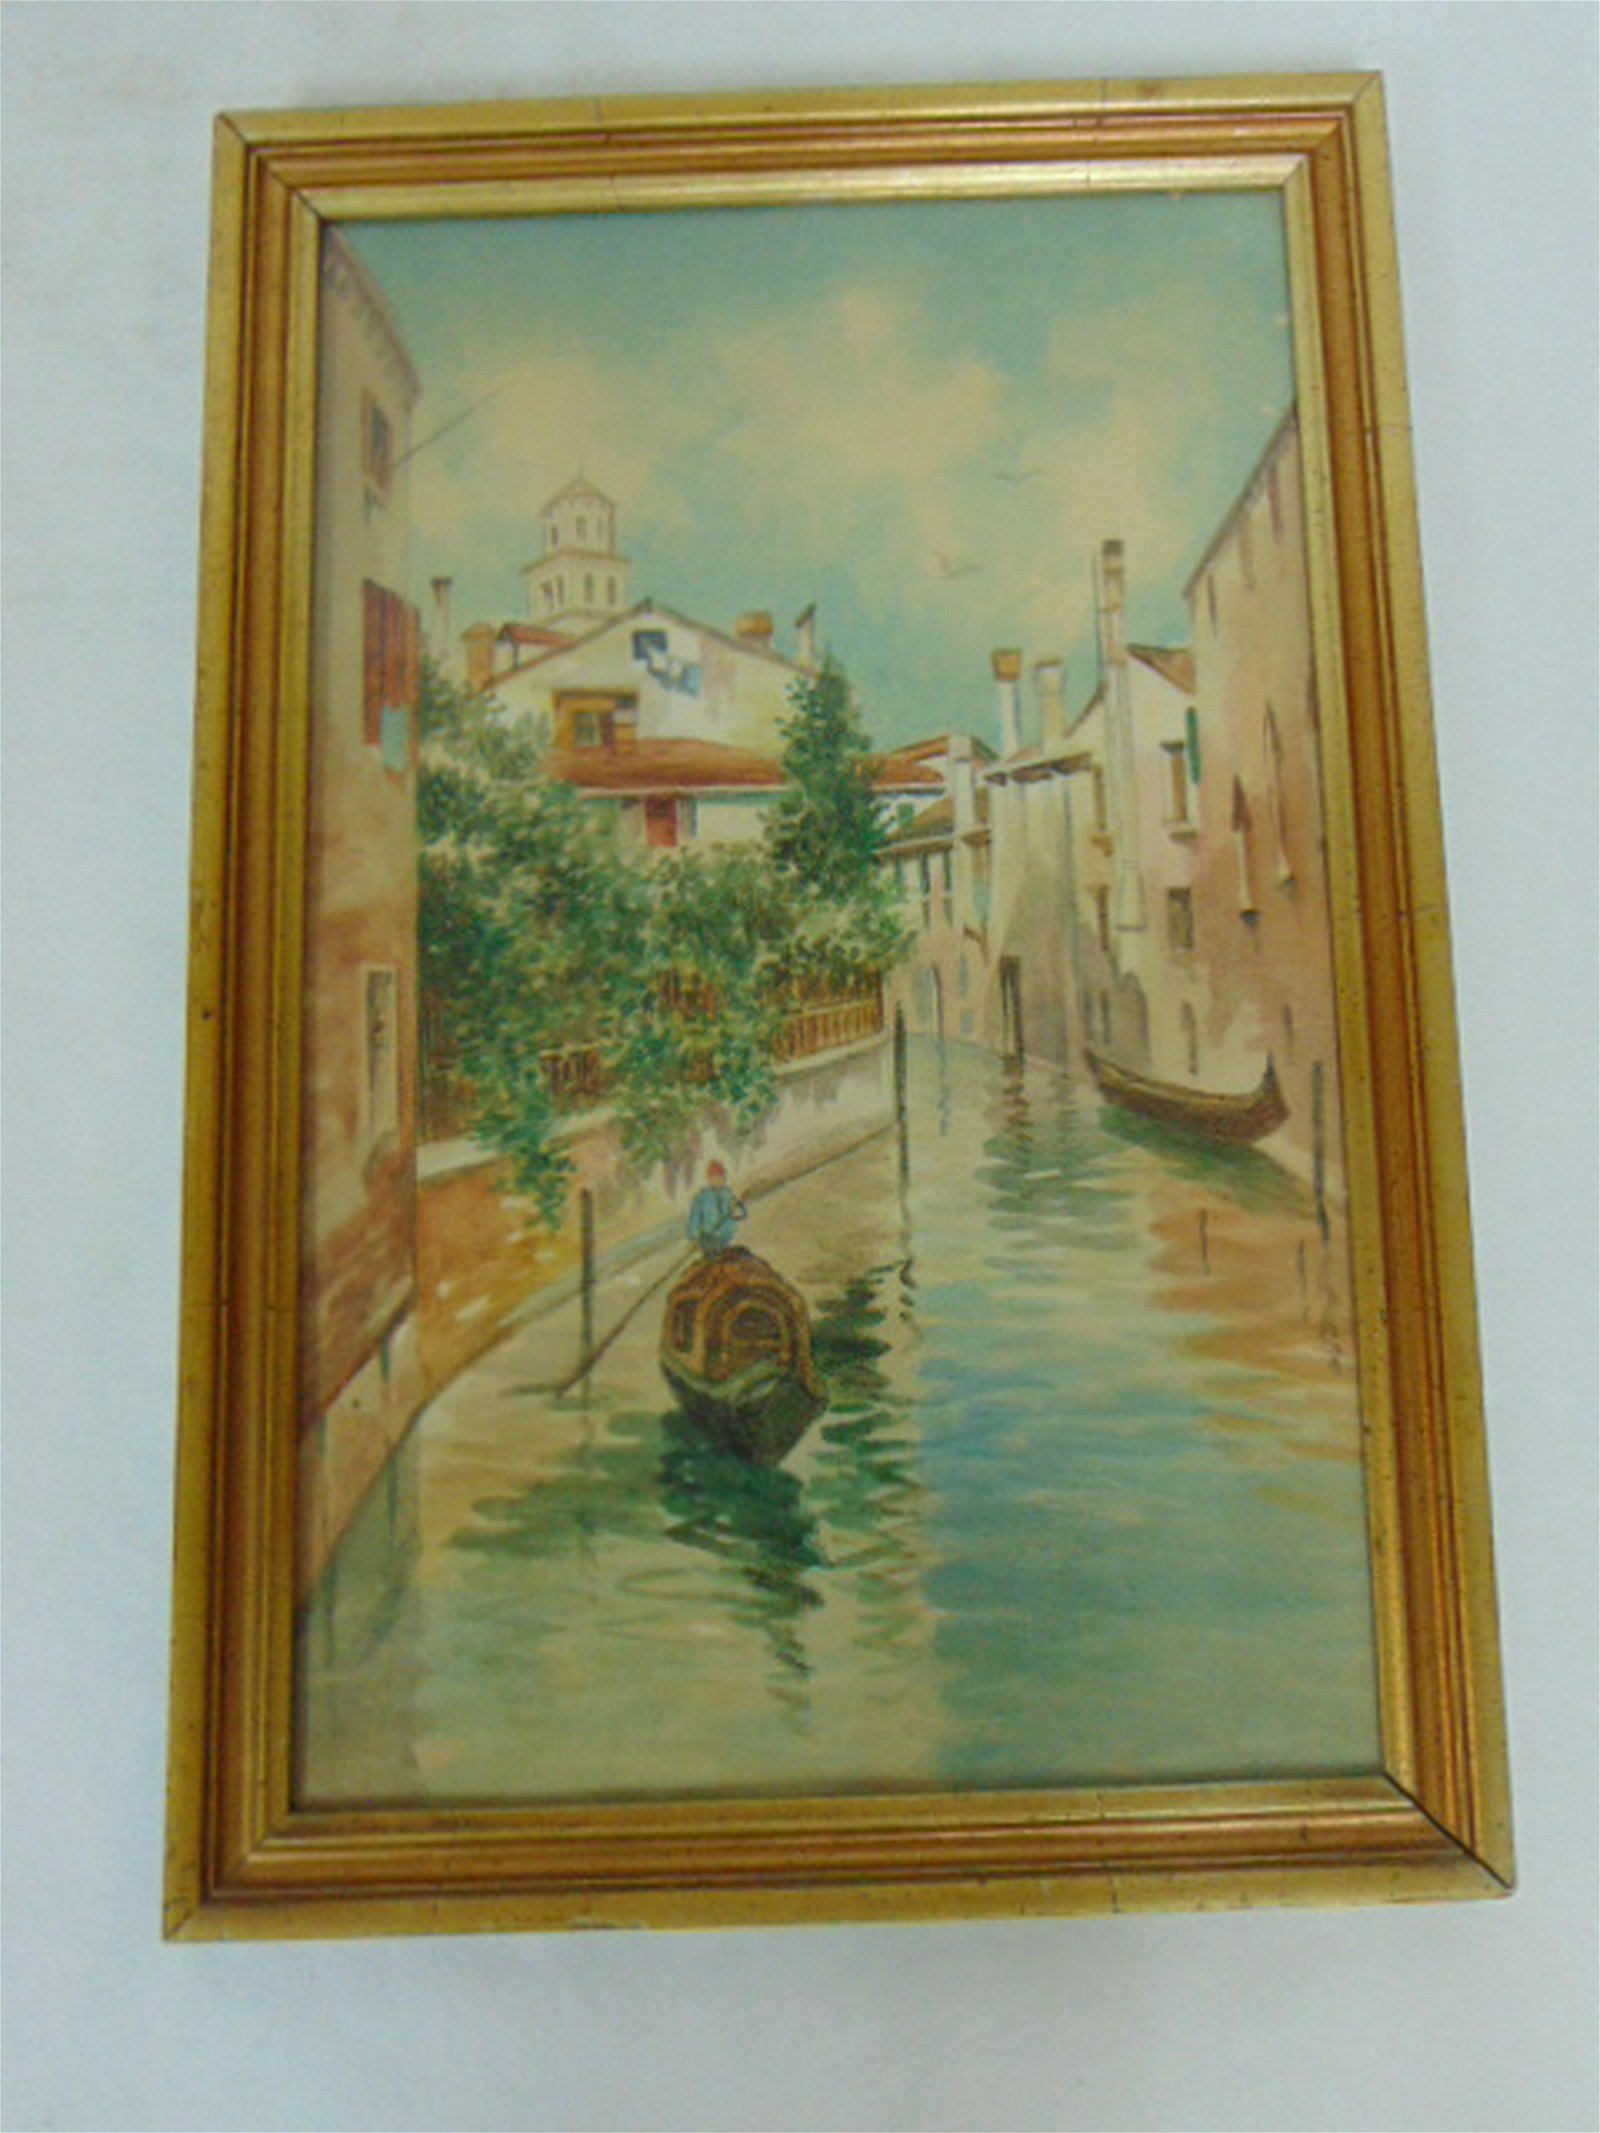 ORIGINAL ANTIQUE WATERCOLOR OF VENICE ITALY